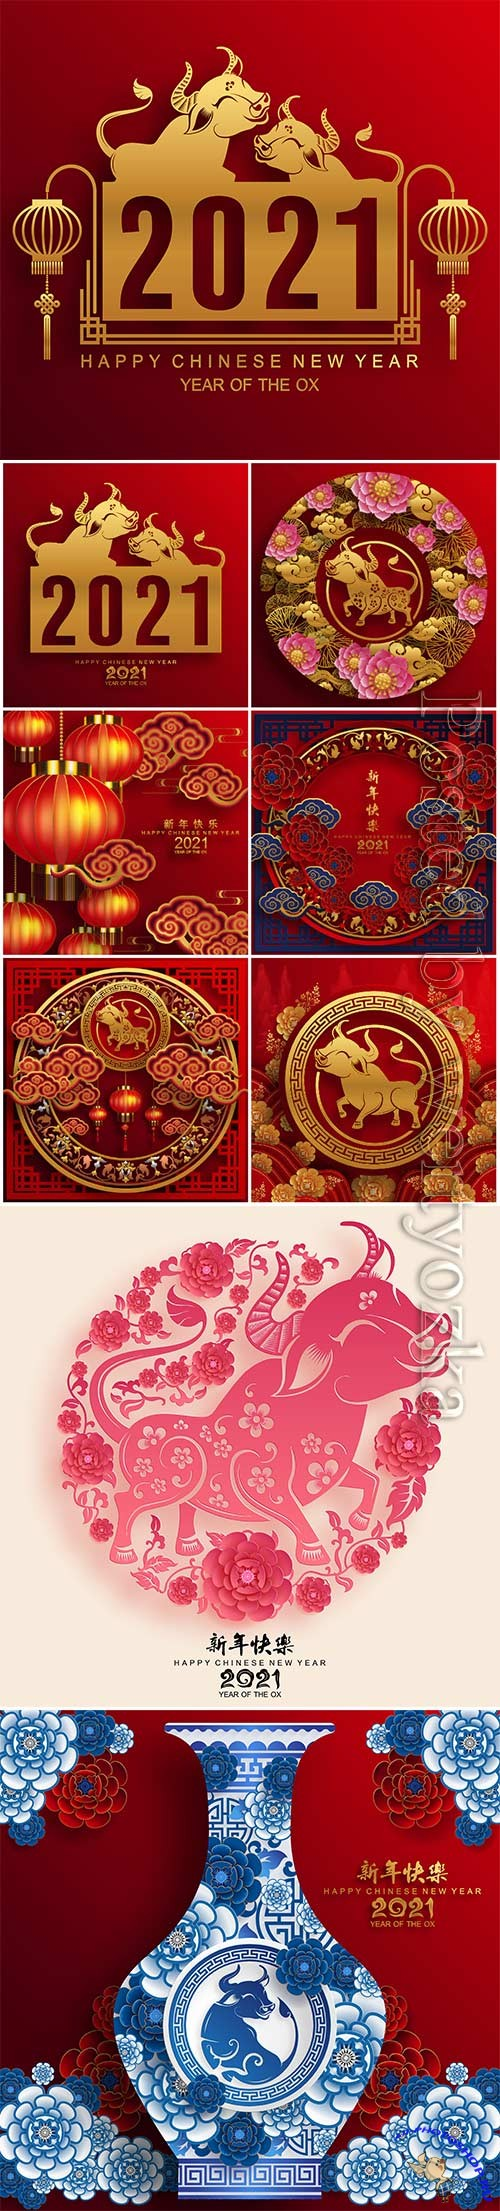 Chinese new year 2021 greeting vector poster